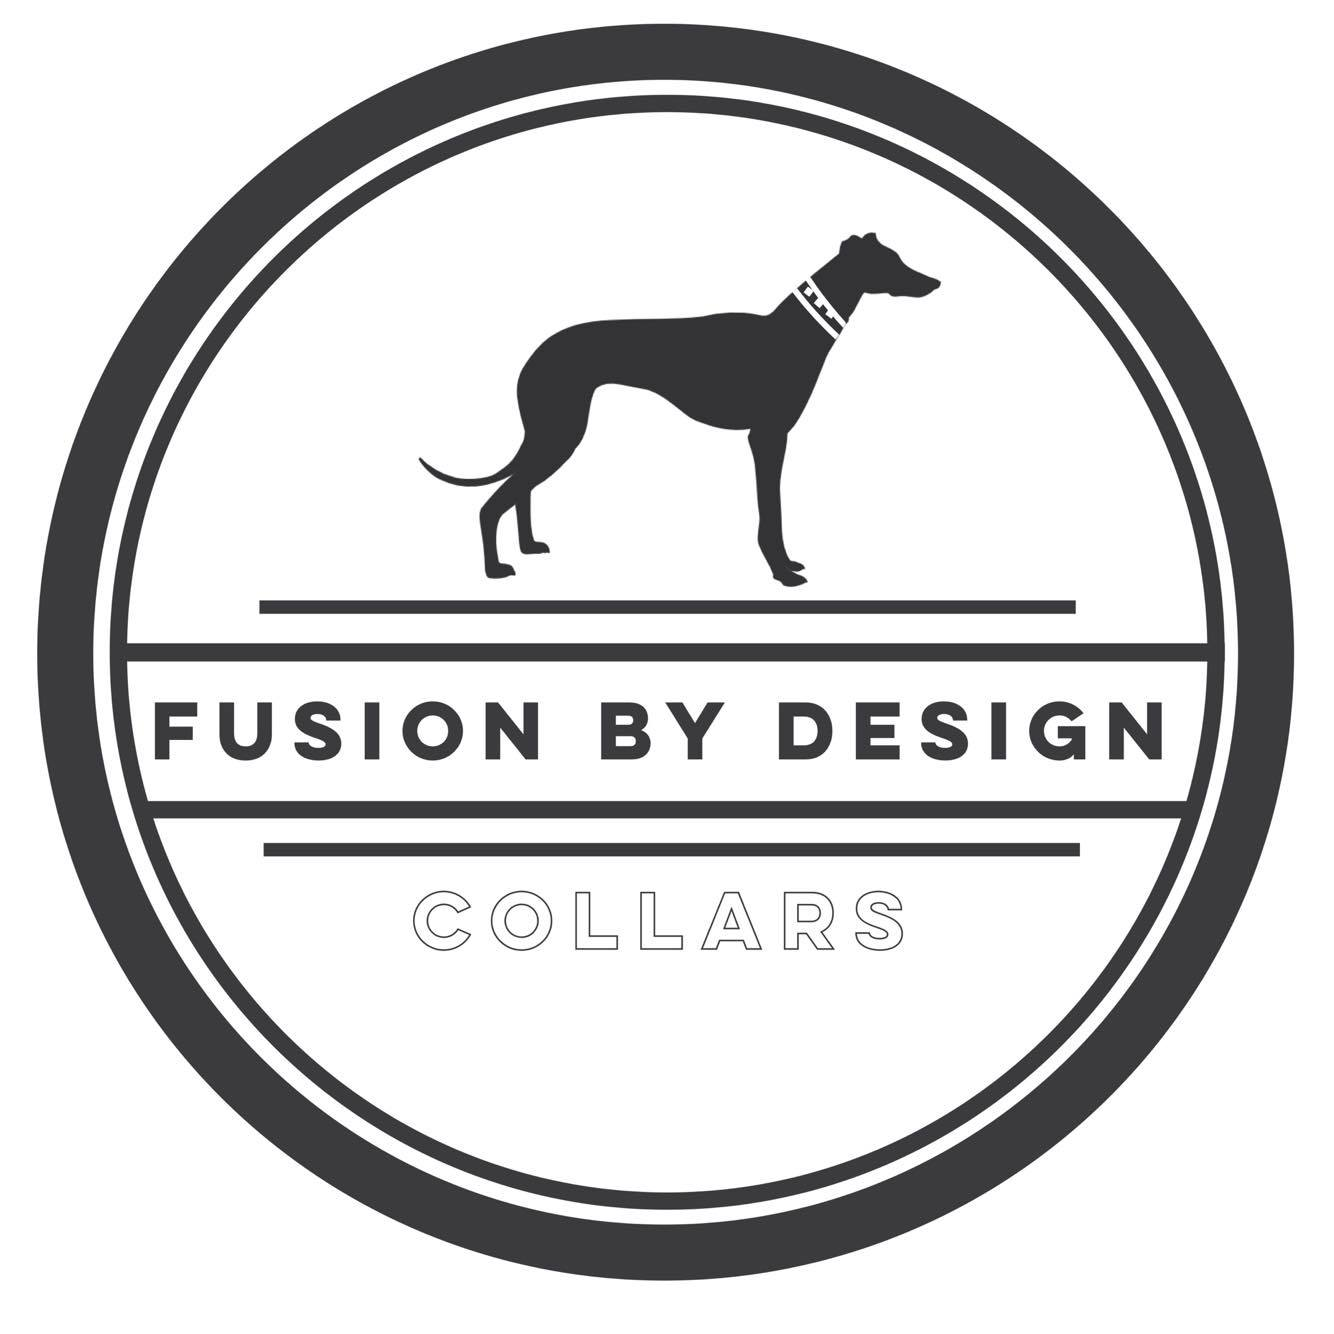 Fusion By Design Collars